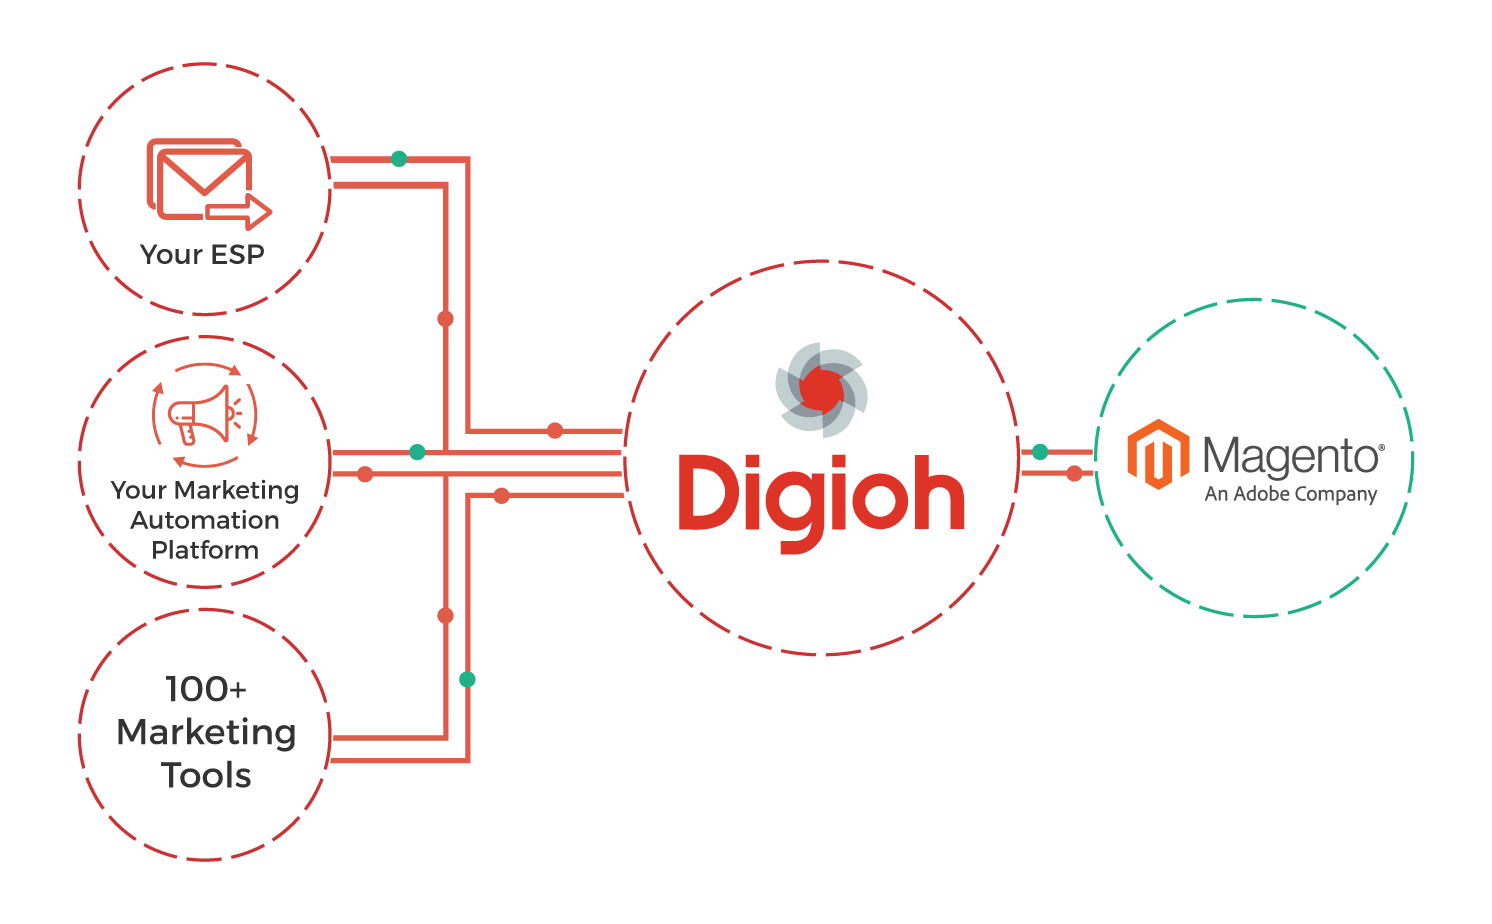 Digioh forms integrate with Magento and your stack